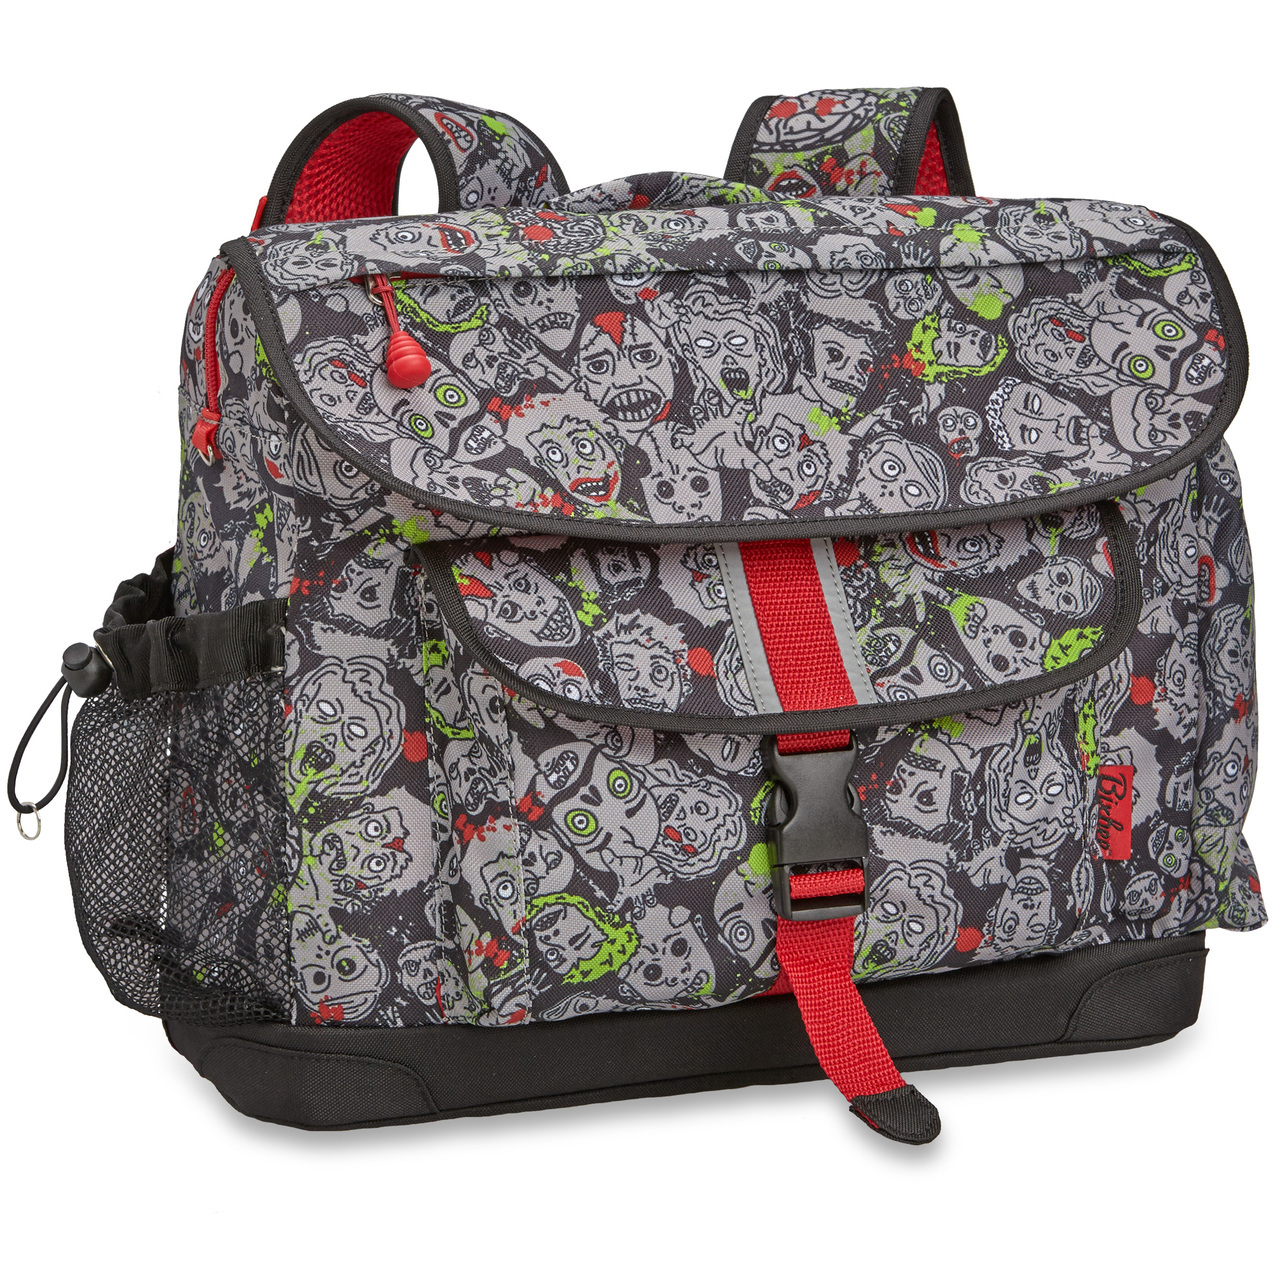 Zombie backpack by Bixbee - LivingMiVIdaLoca.com